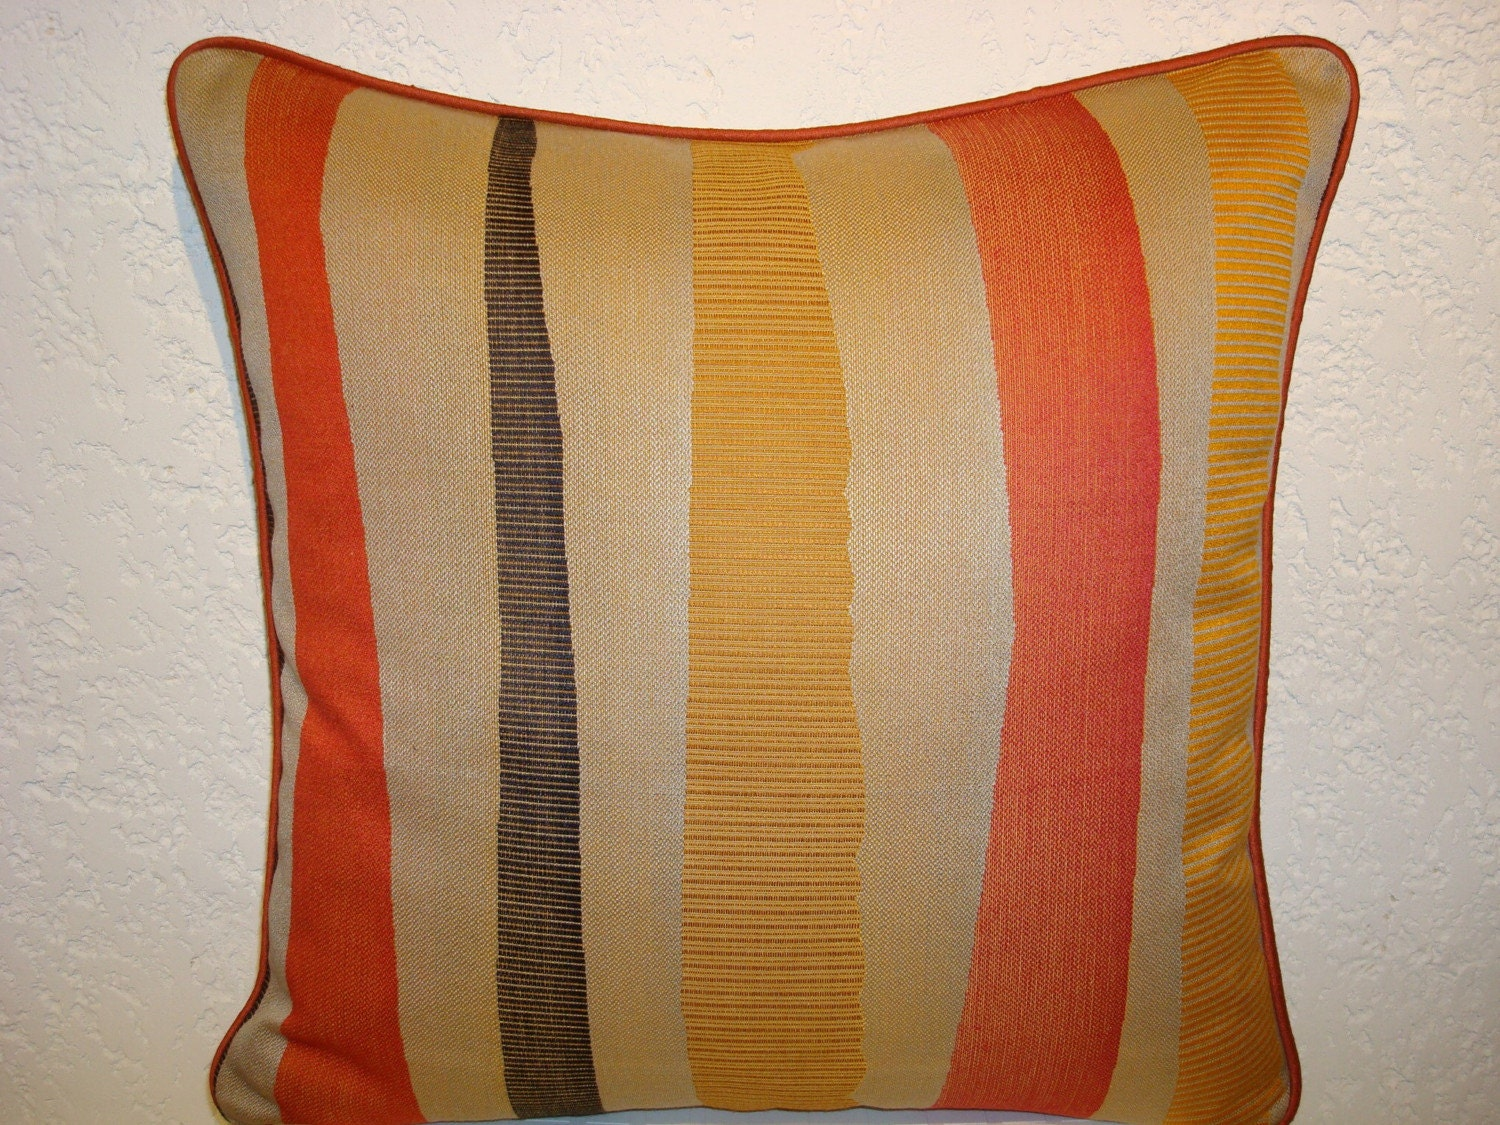 Modern Graphic Pillow : Modern Graphic Striped Pillow stone orange black yellow